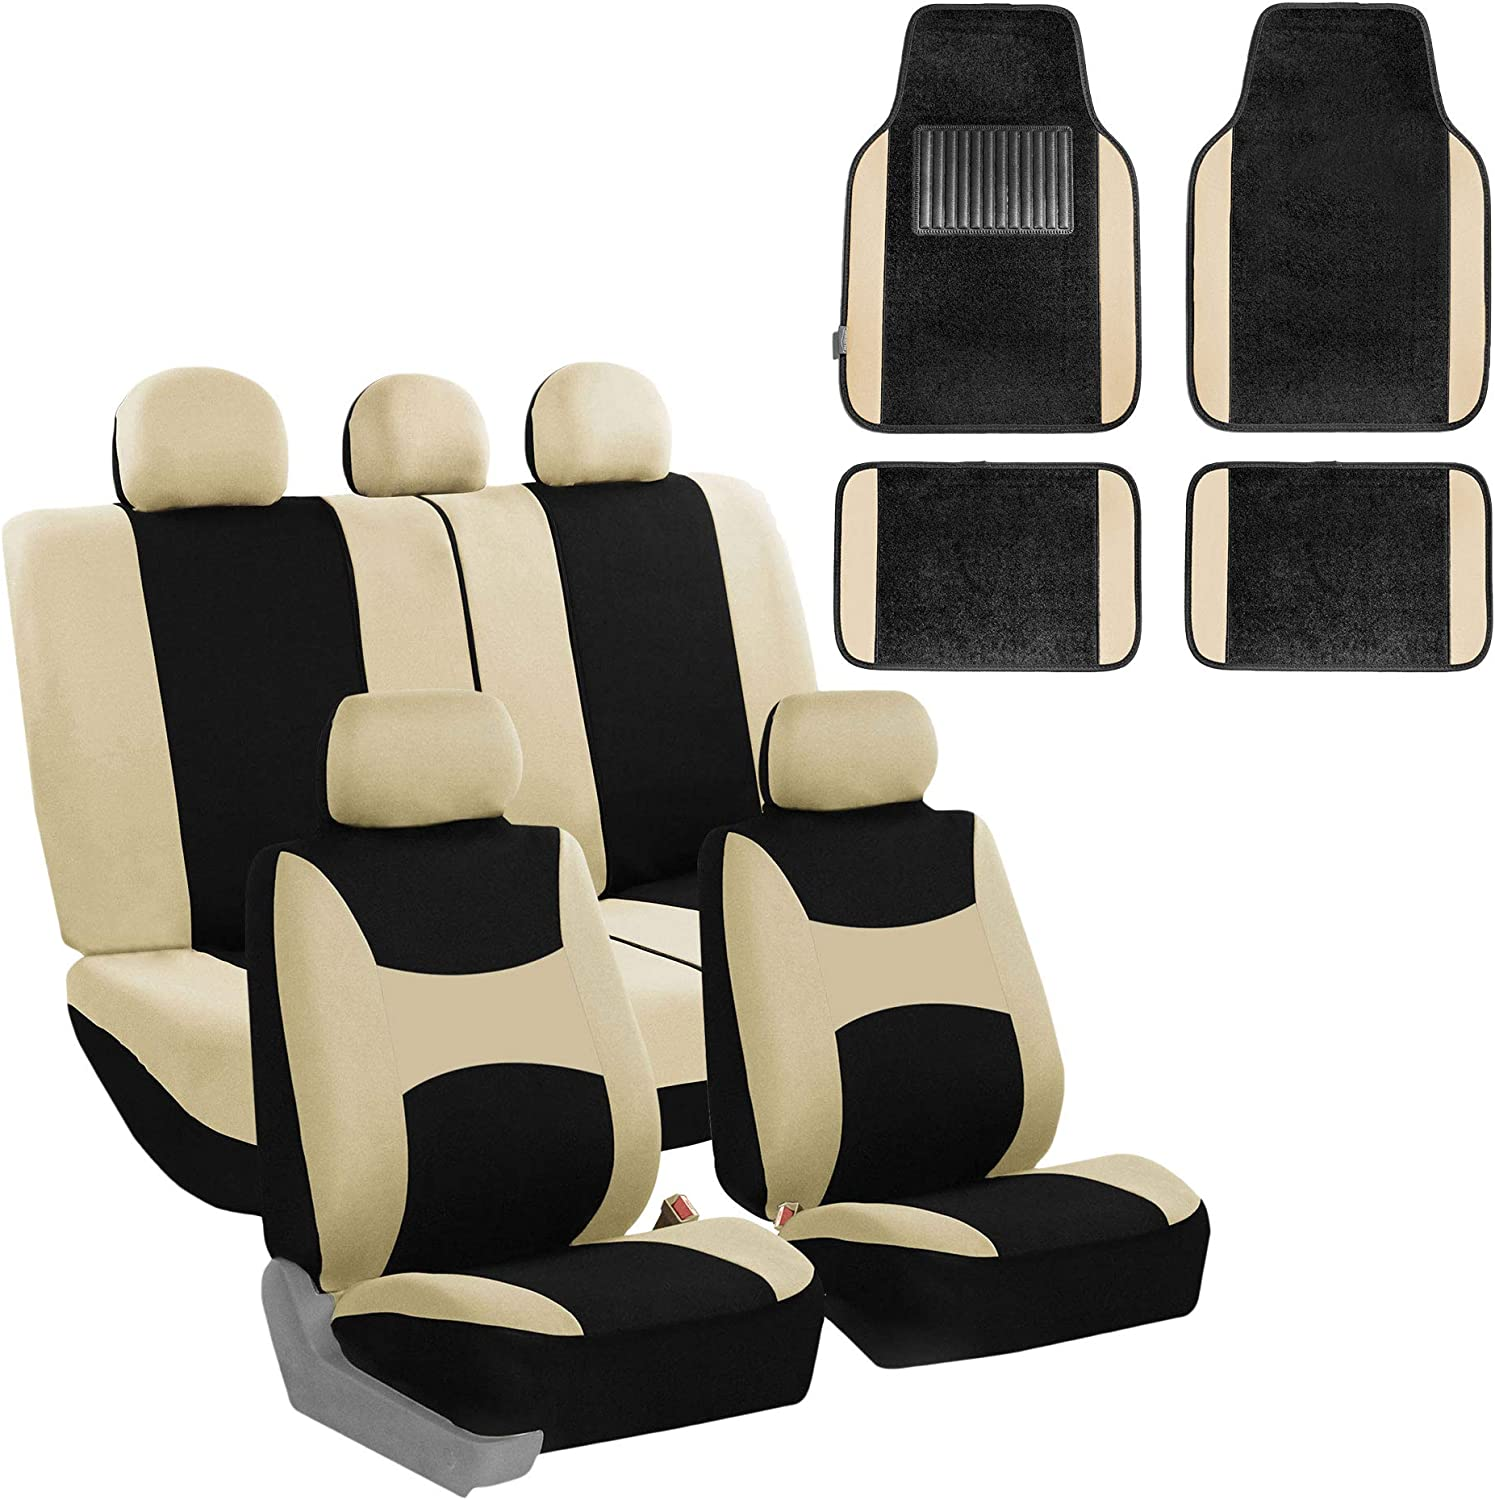 SUV Fit Most Car or Van Carpet Floor Mats Solid Black Truck FH Group FB030115 Light /& Breezy Cloth Seat Cover Set Airbag /& Split Ready w